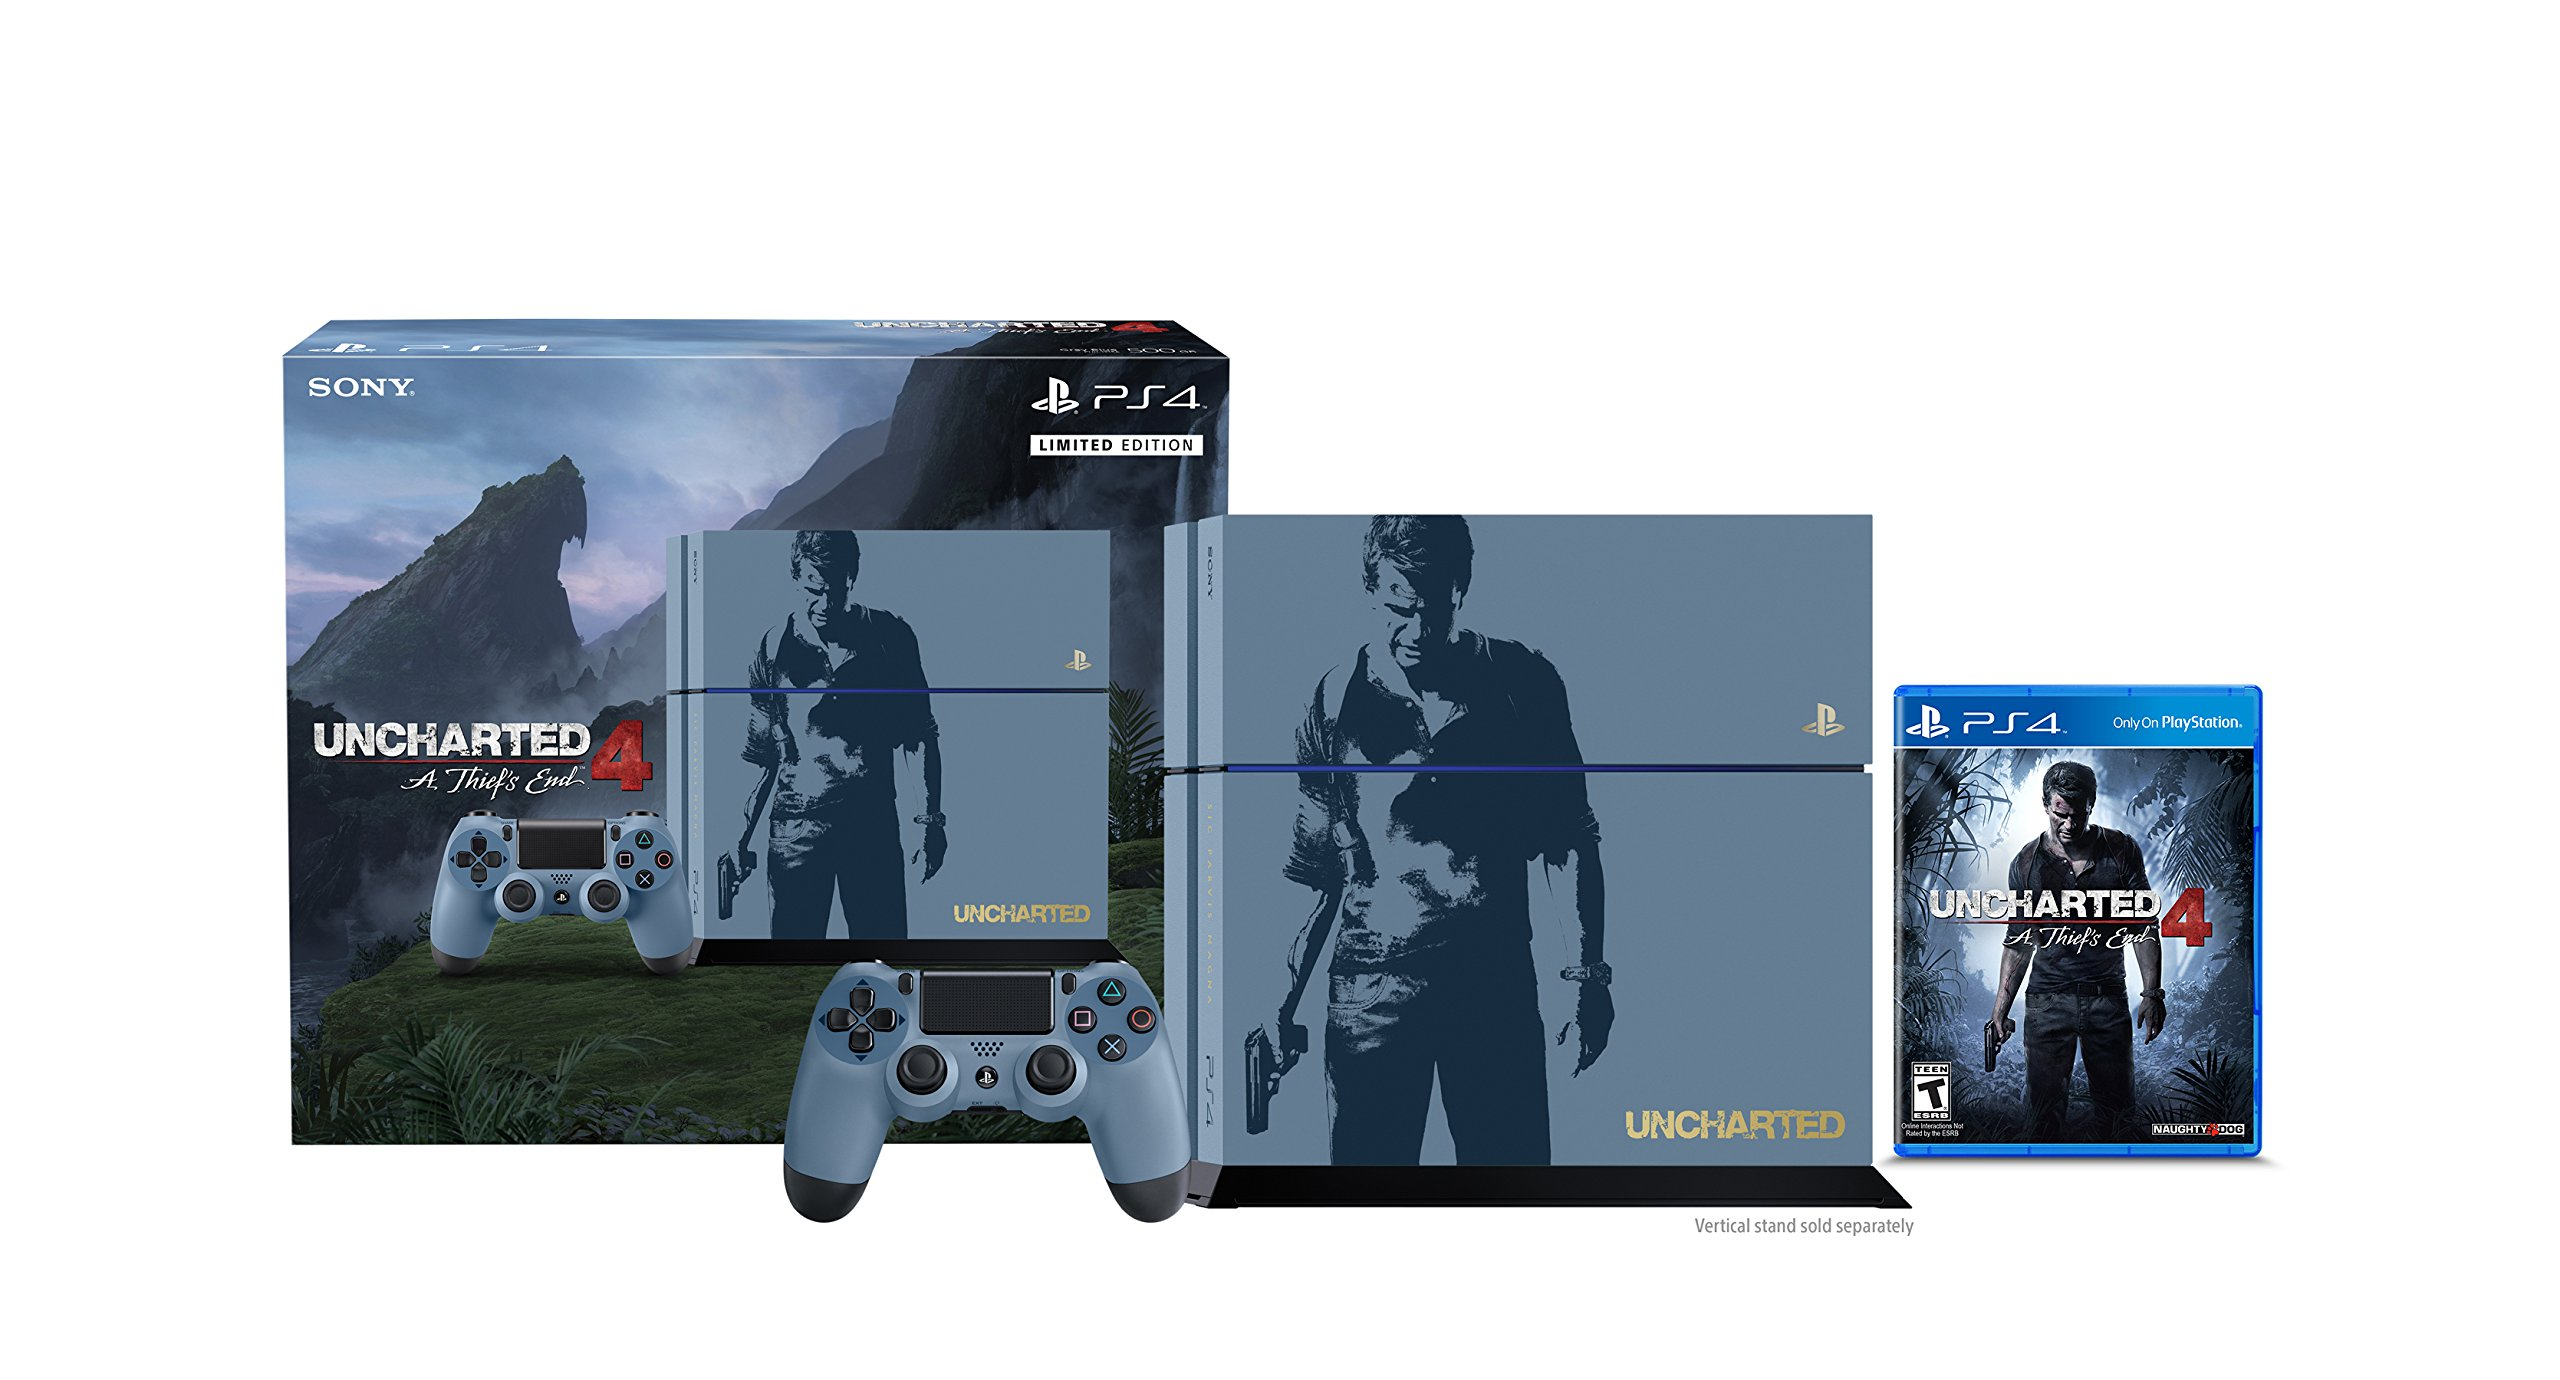 PlayStation 4 500GB Console - Uncharted 4 Limited Edition Bundle [Discontinued] by Sony